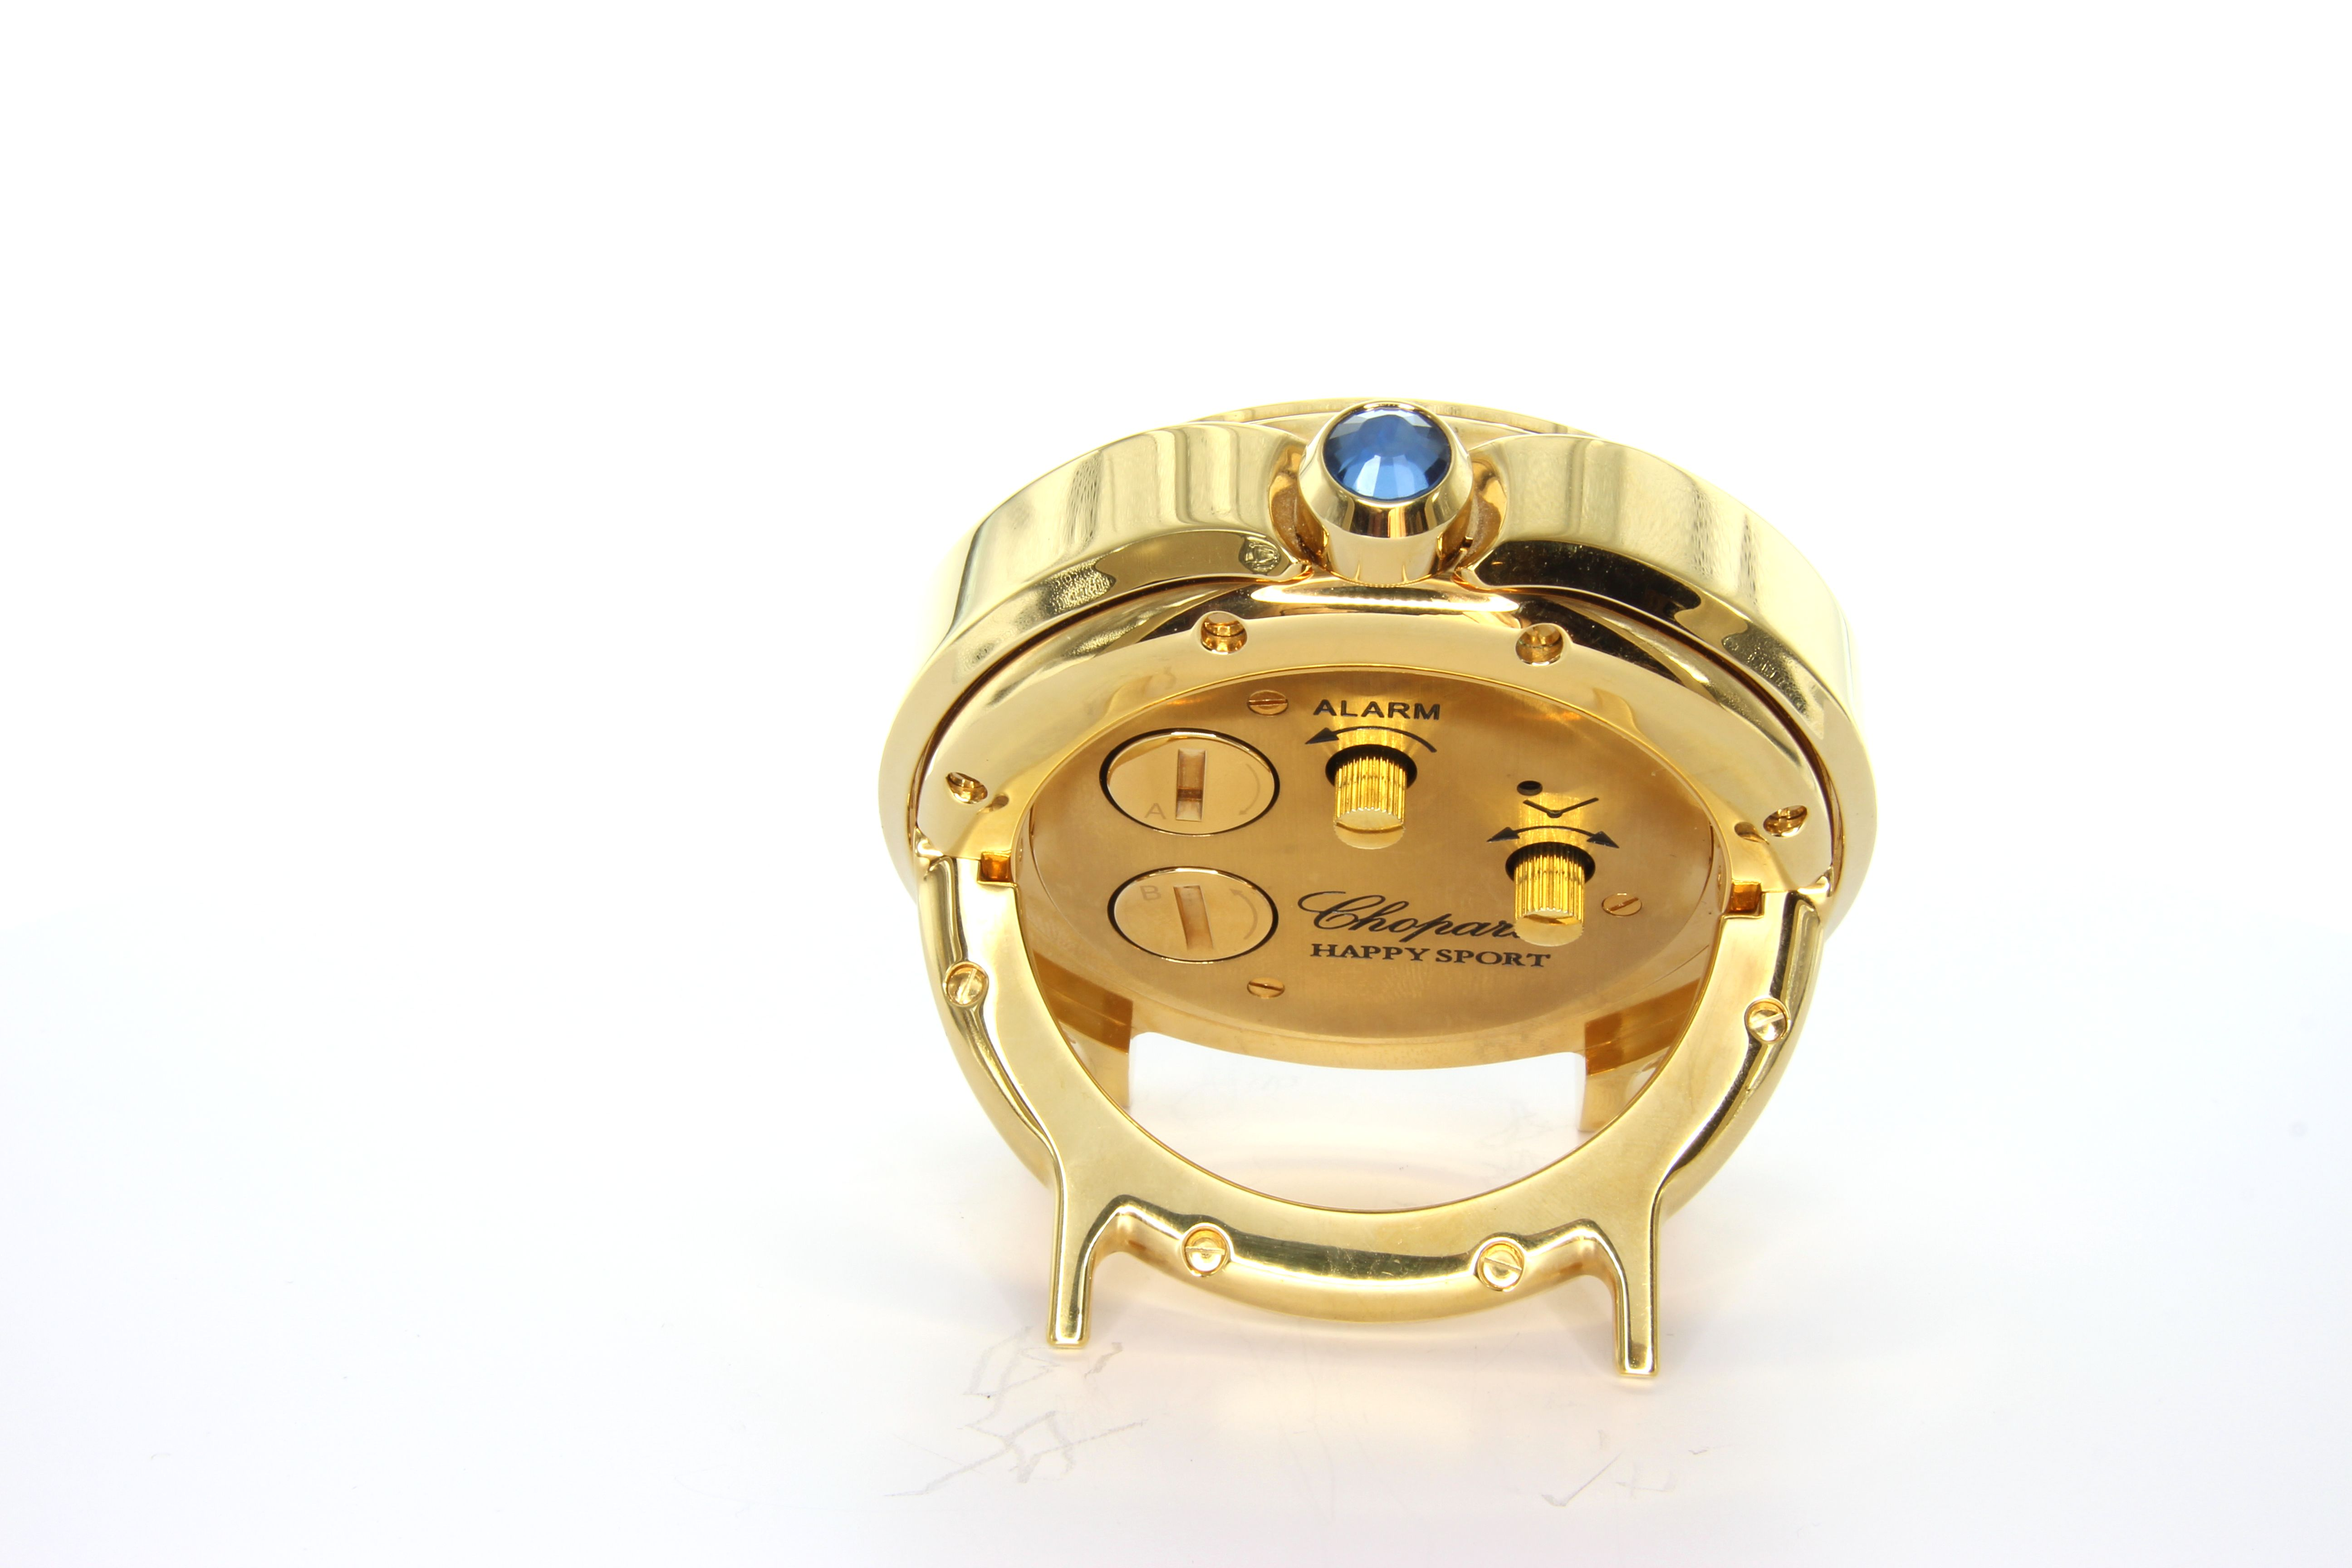 CHOPARD HAPPY SPORT ALARM CLOCK 95020-0027